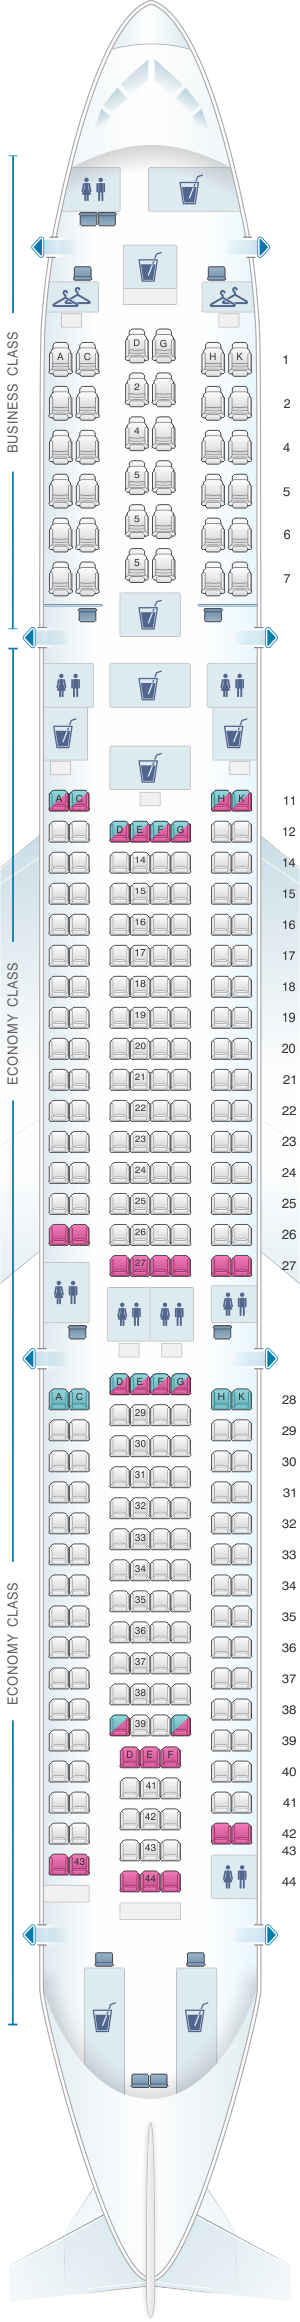 Seat map for Malaysia Airlines Airbus A330 300